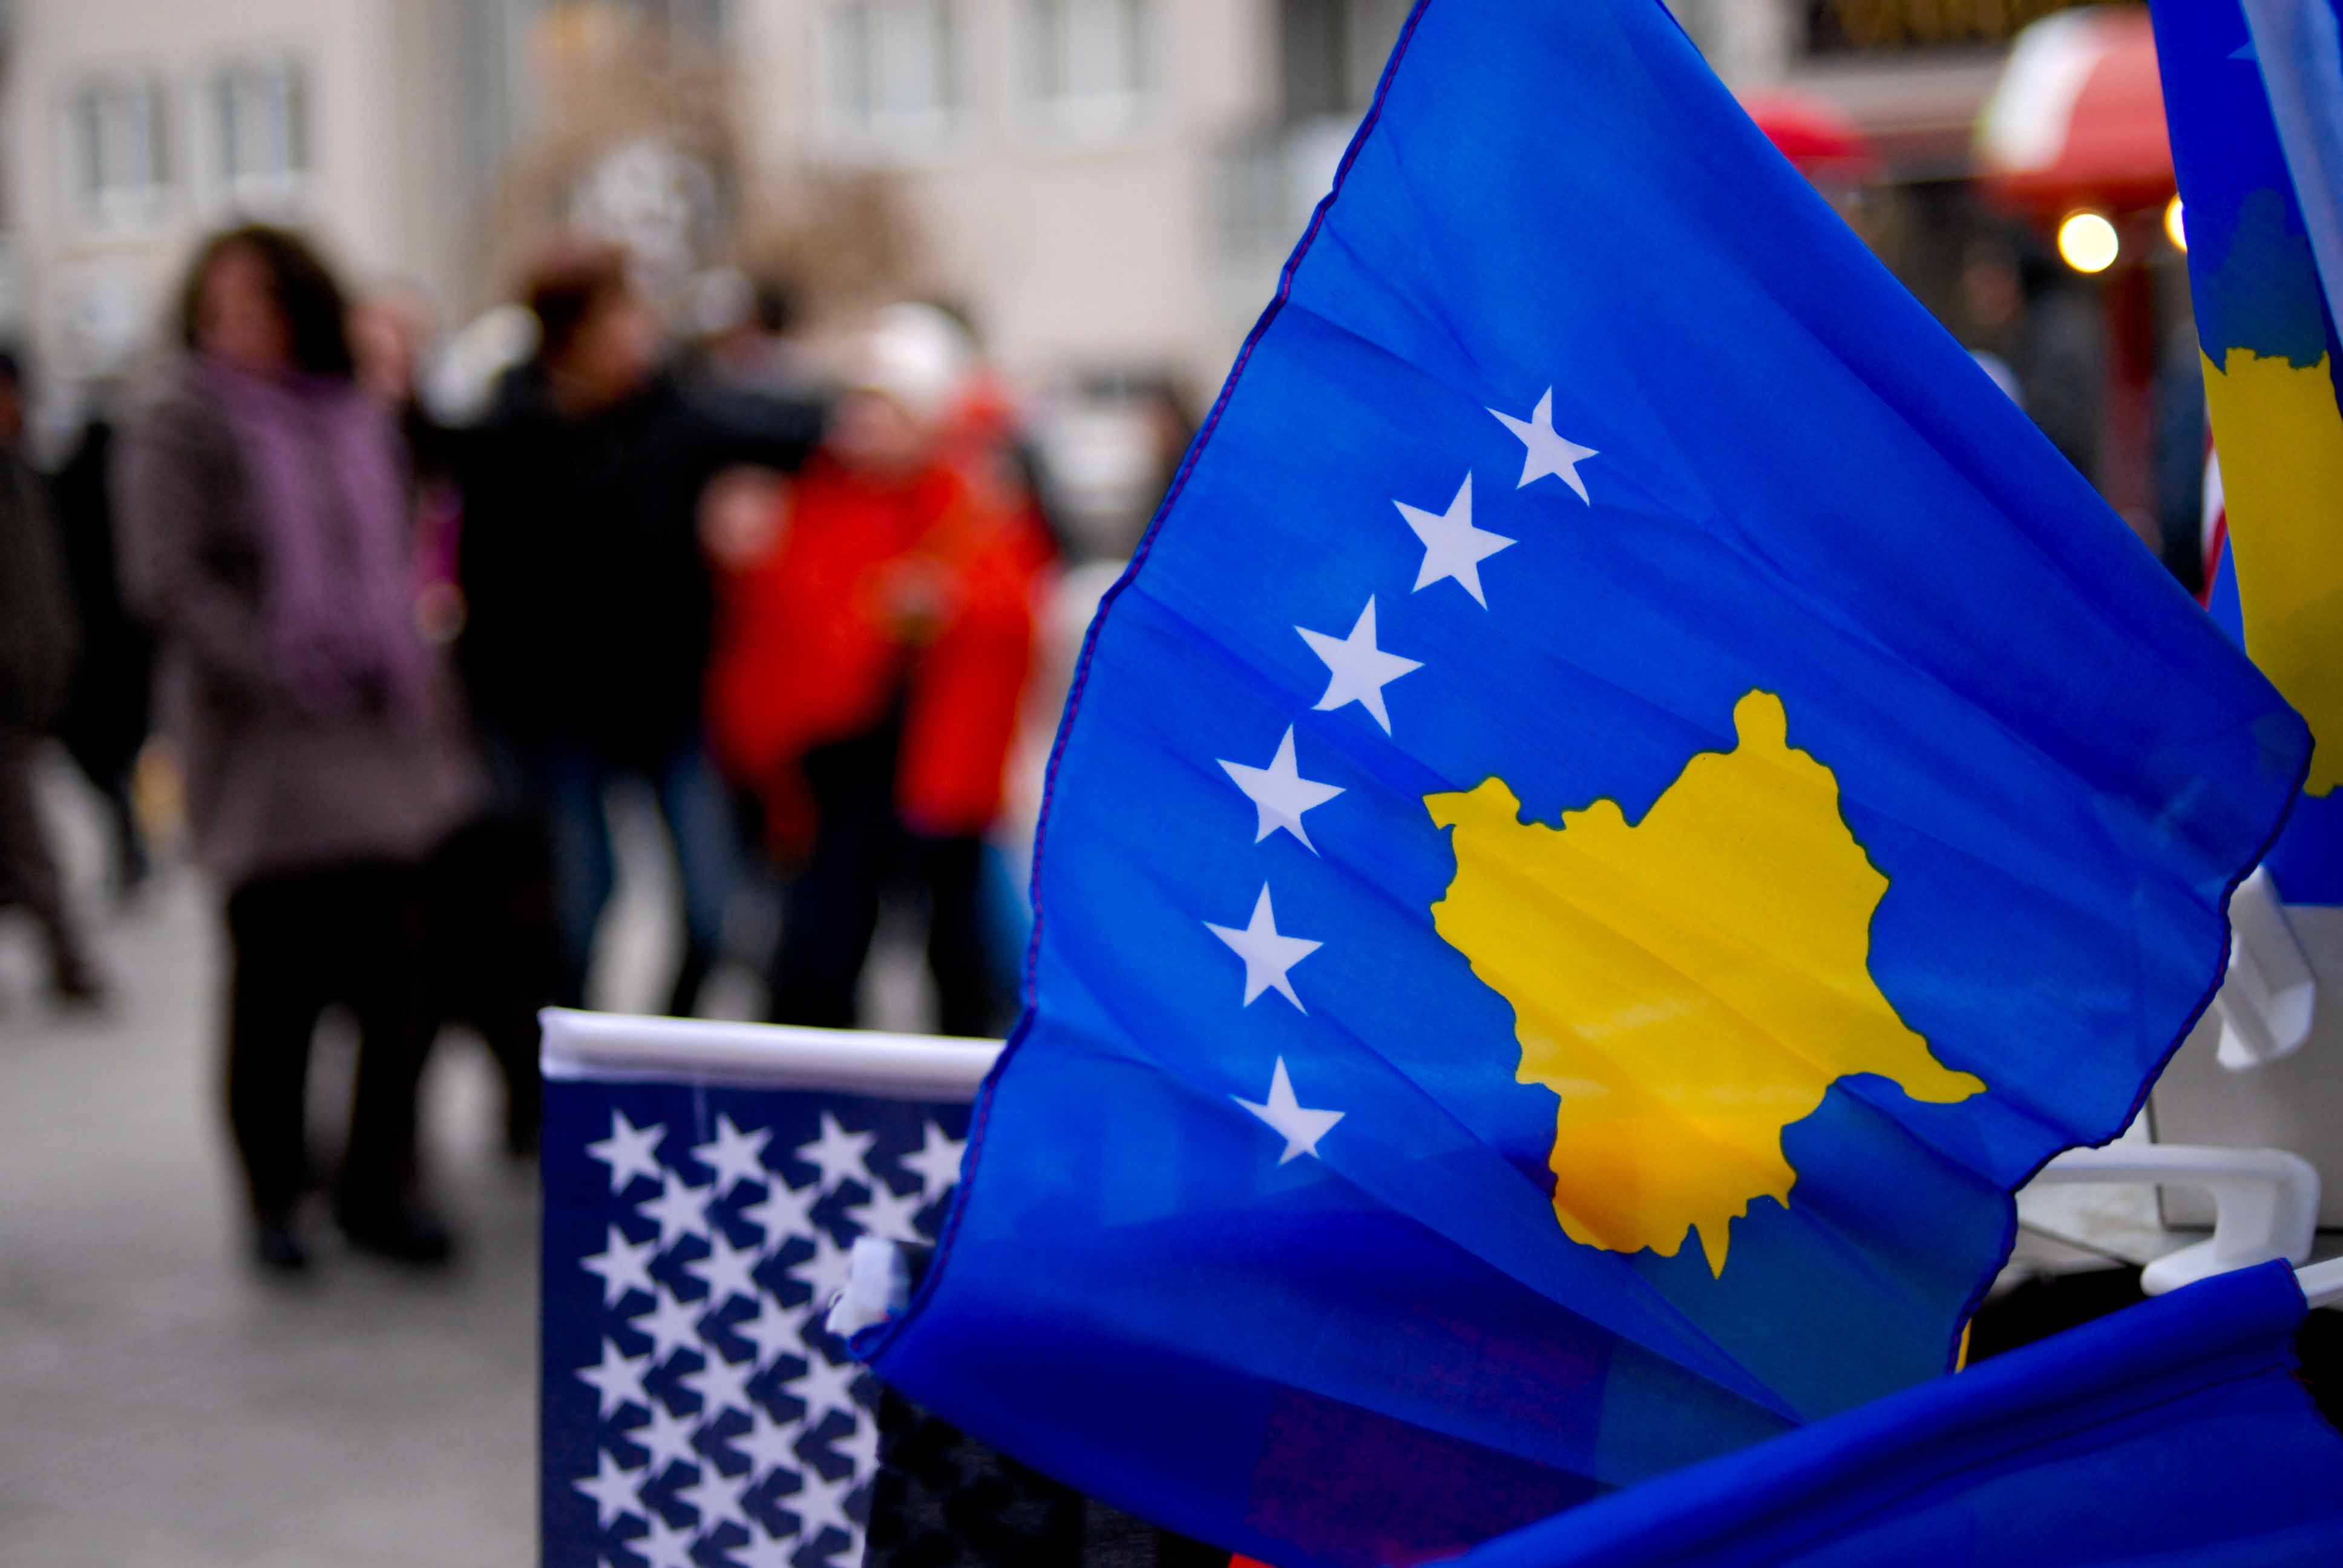 European Parliament scraps visas for Kosovo, Albanian politicians praise the decision